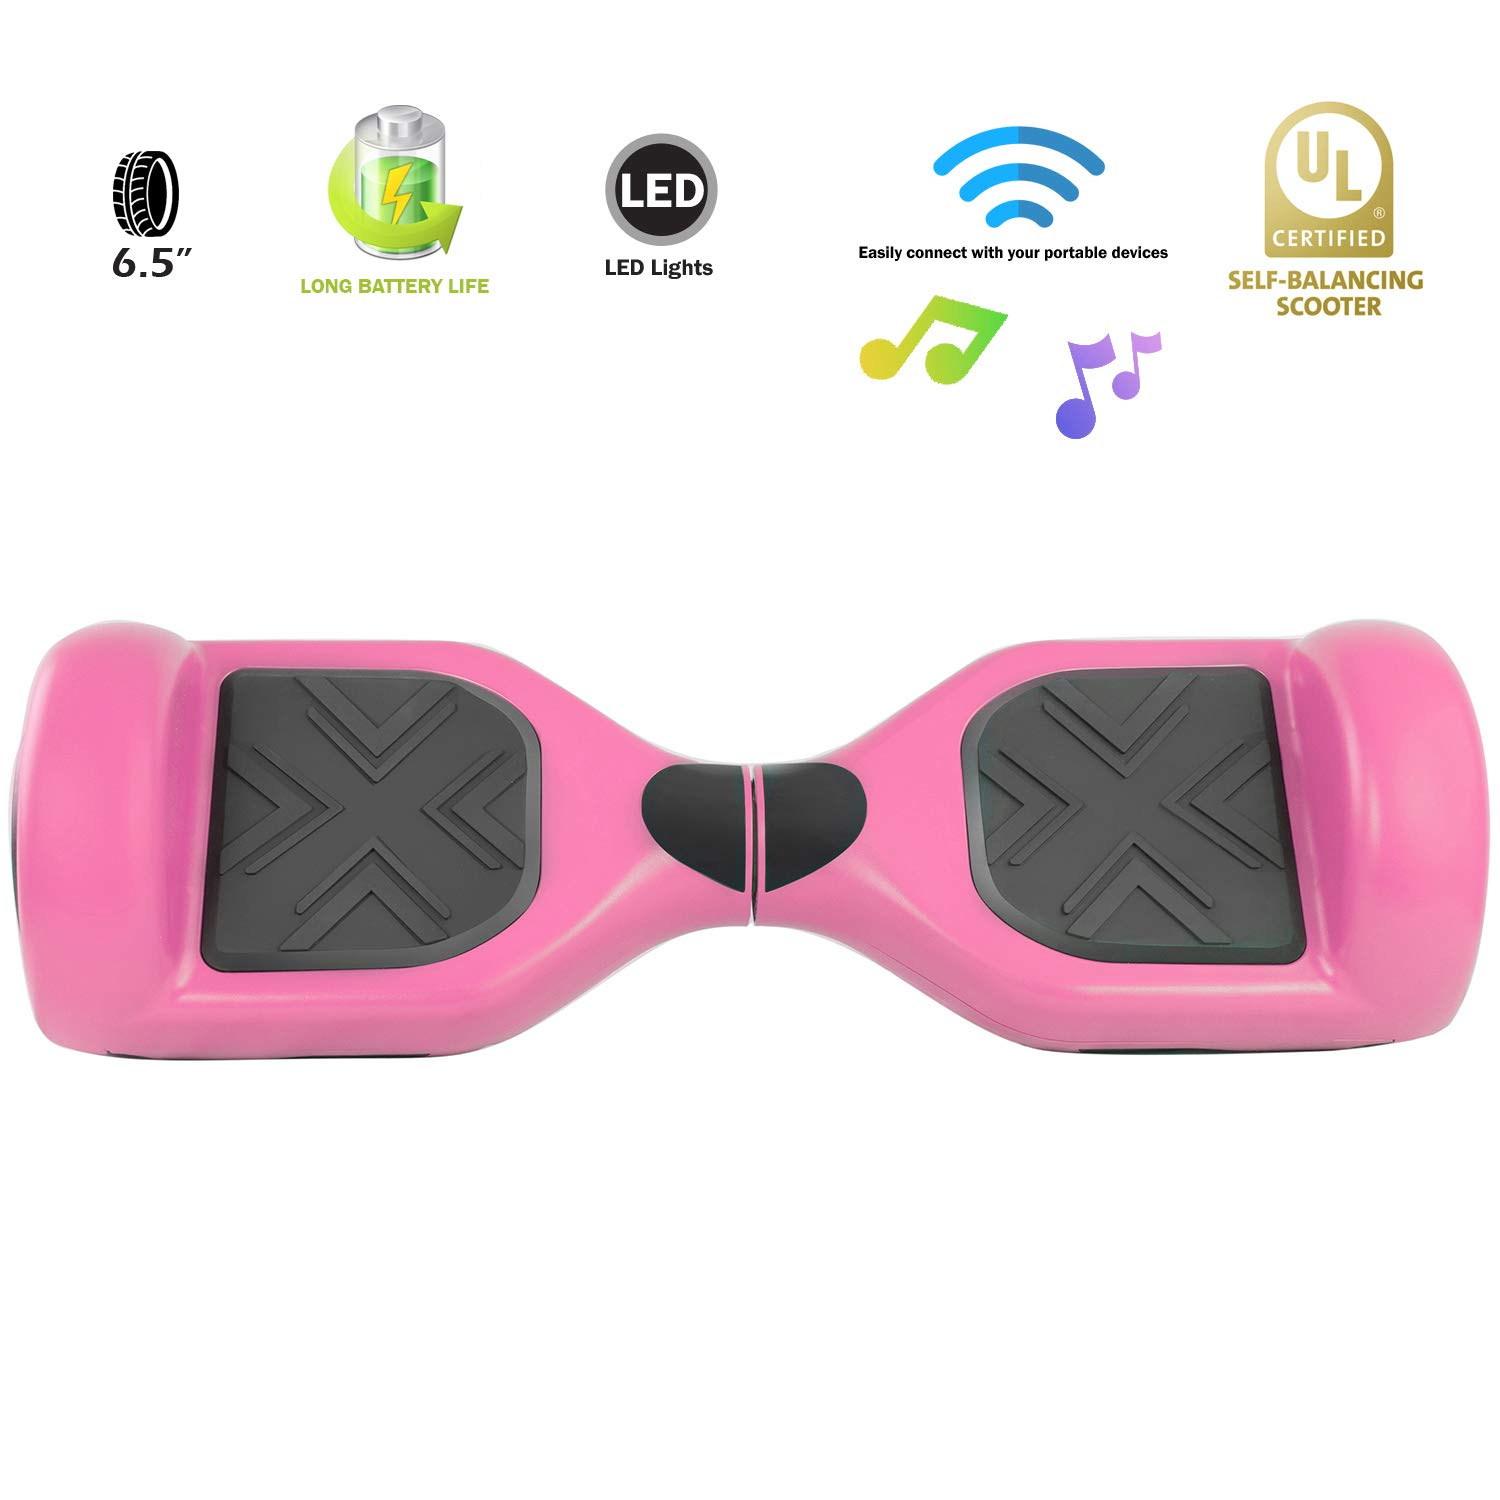 XPRIT Easter Sale Hoverboard w/Bluetooth Speaker (Pink) by XPRIT (Image #4)